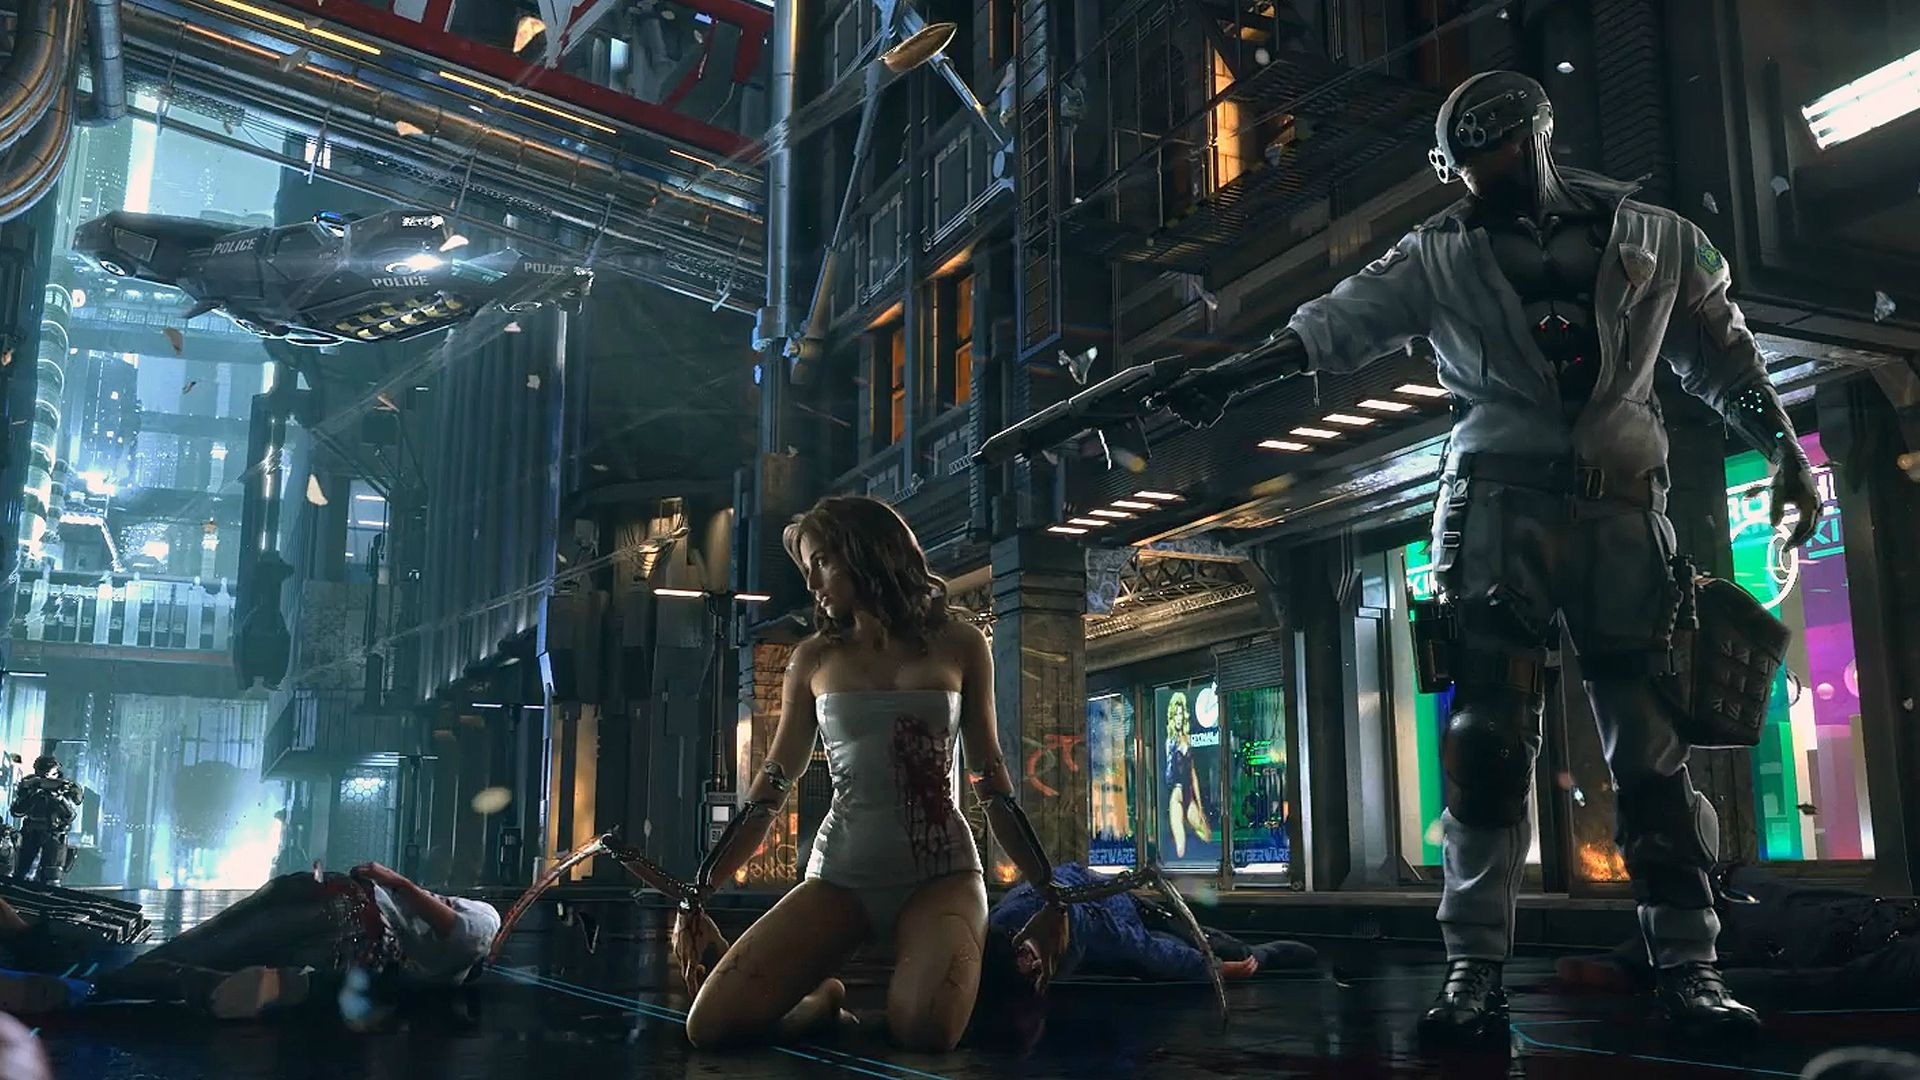 Cyberpunk 2077 Could Blow Witcher 3 Out Of The Water, Dev Says cyberpunk